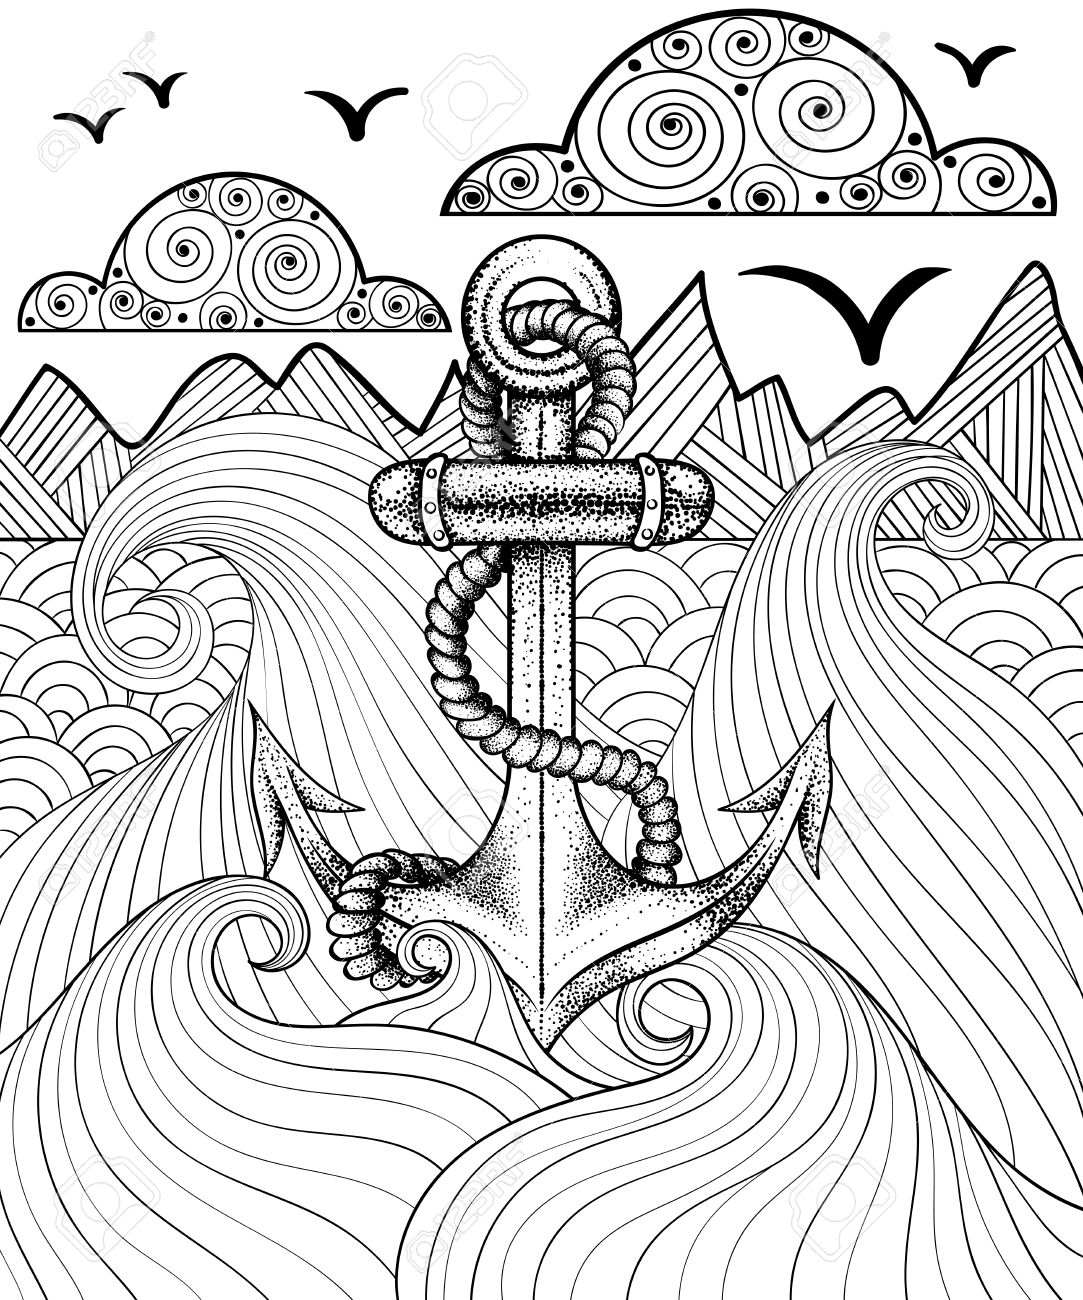 Vector zentangle print for adult coloring page. Hand drawn artistically..